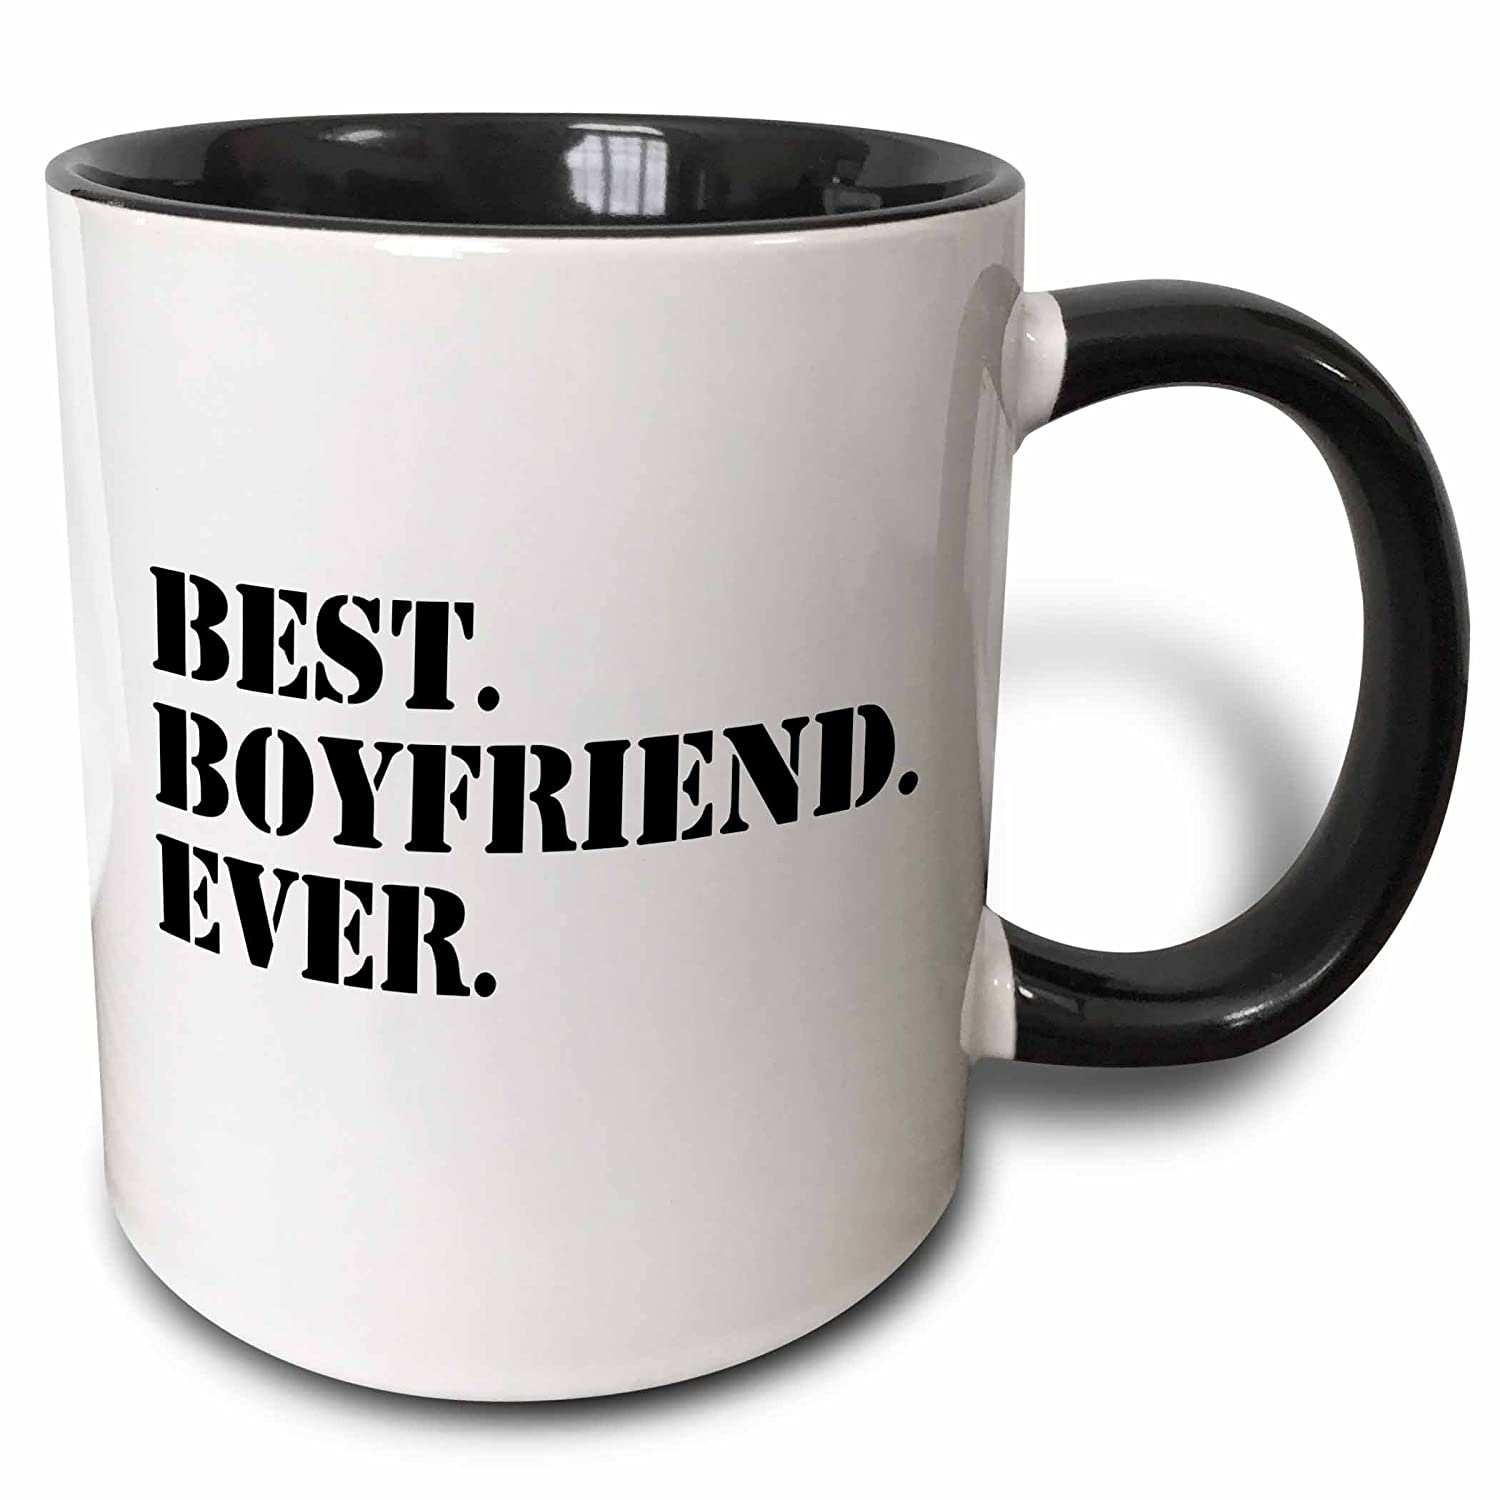 Amazon.com: 3dRose (mug_151478_4) Best Boyfriend Ever - fun romantic ...